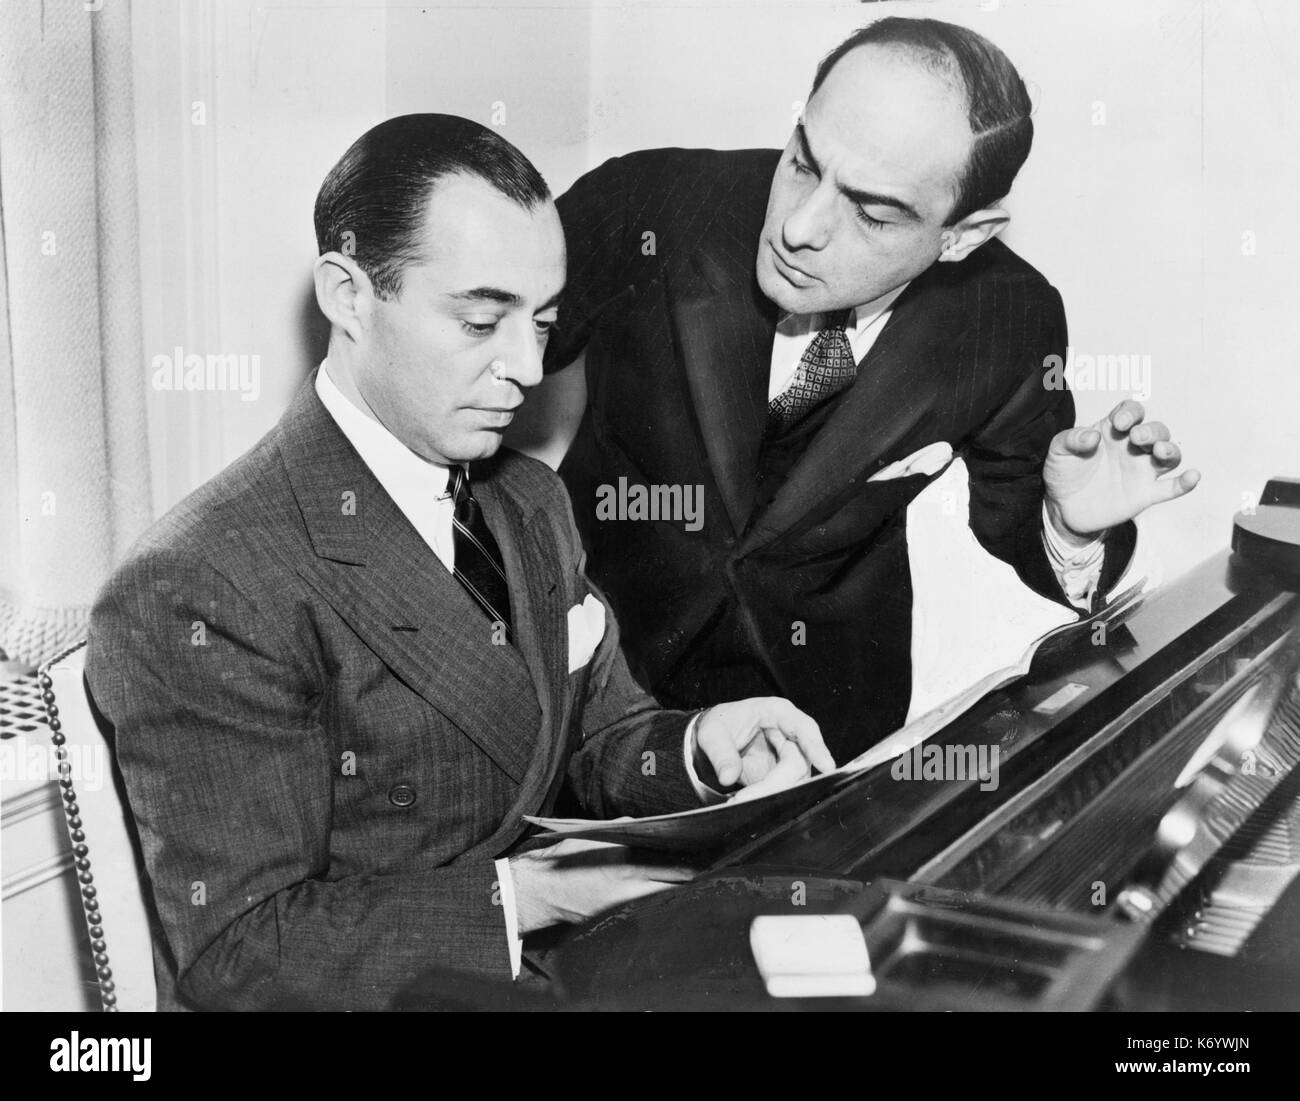 richard rodgers and rogers lyricist lorenz --- hart (lyricist with richard rodgers) crossword puzzle clue has 1 possible answer and appears in 1 publication.